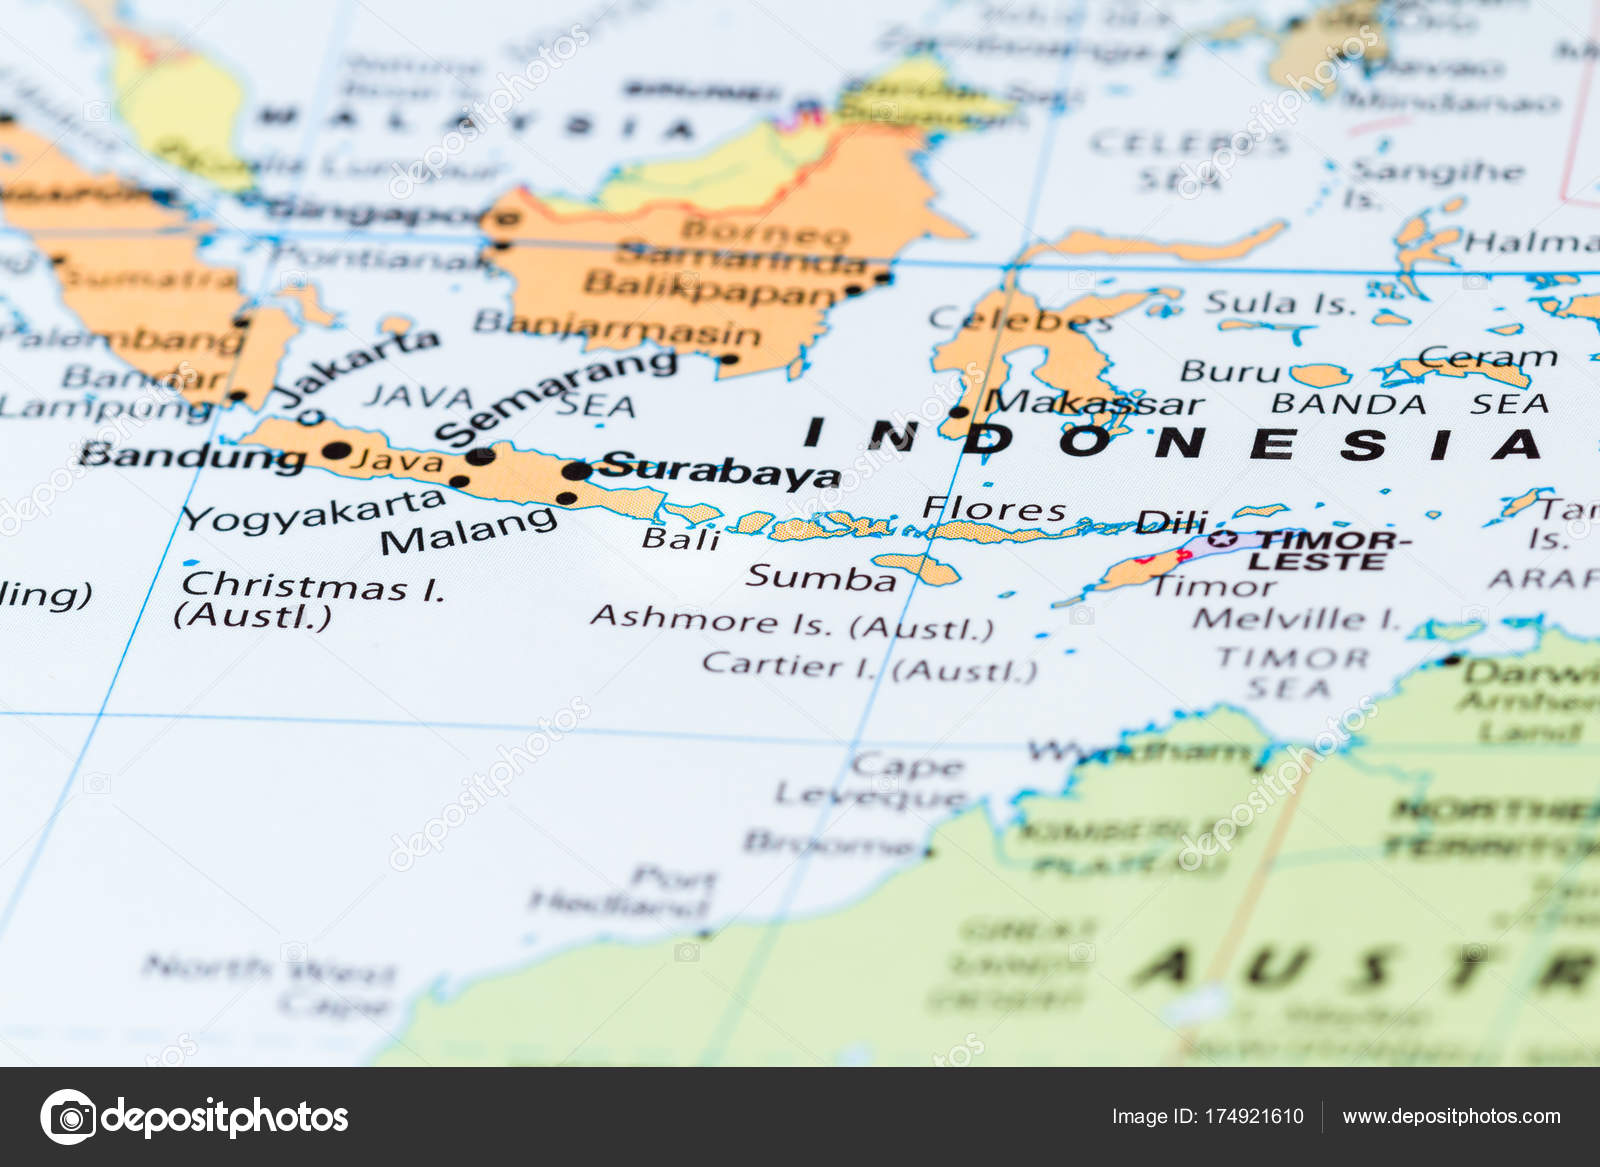 Bali on a map stock photo wollertz 174921610 close up of bali and other south pacific islands on a world map photo by wollertz gumiabroncs Choice Image